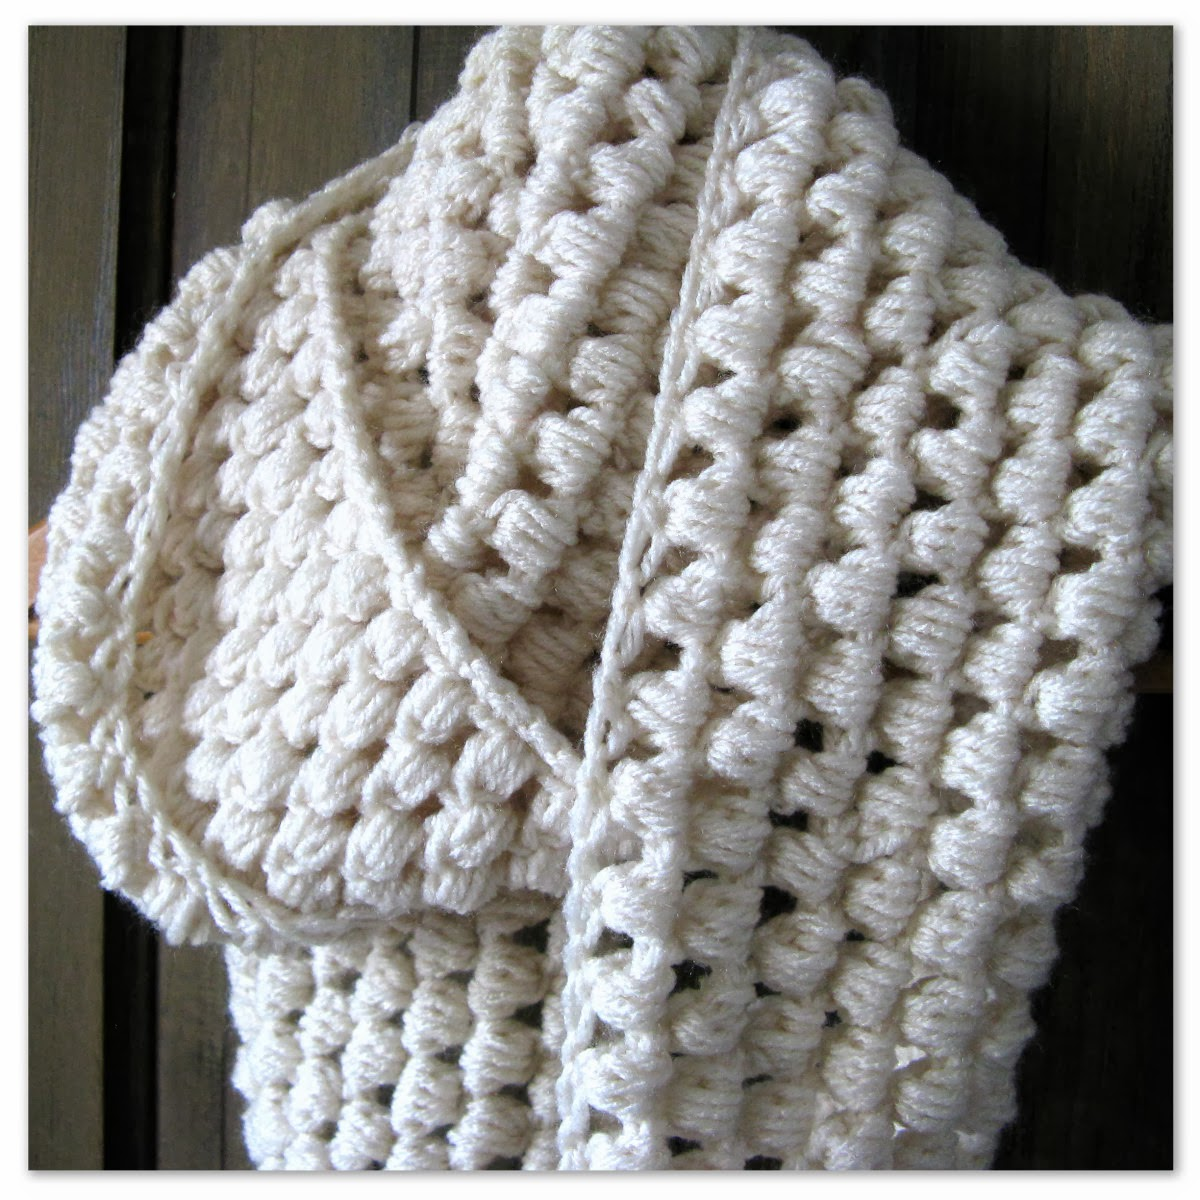 Crochet Stitches For Scarf : Happy as a Lark: Crocheting a Puff Stitch Infinity Scarf